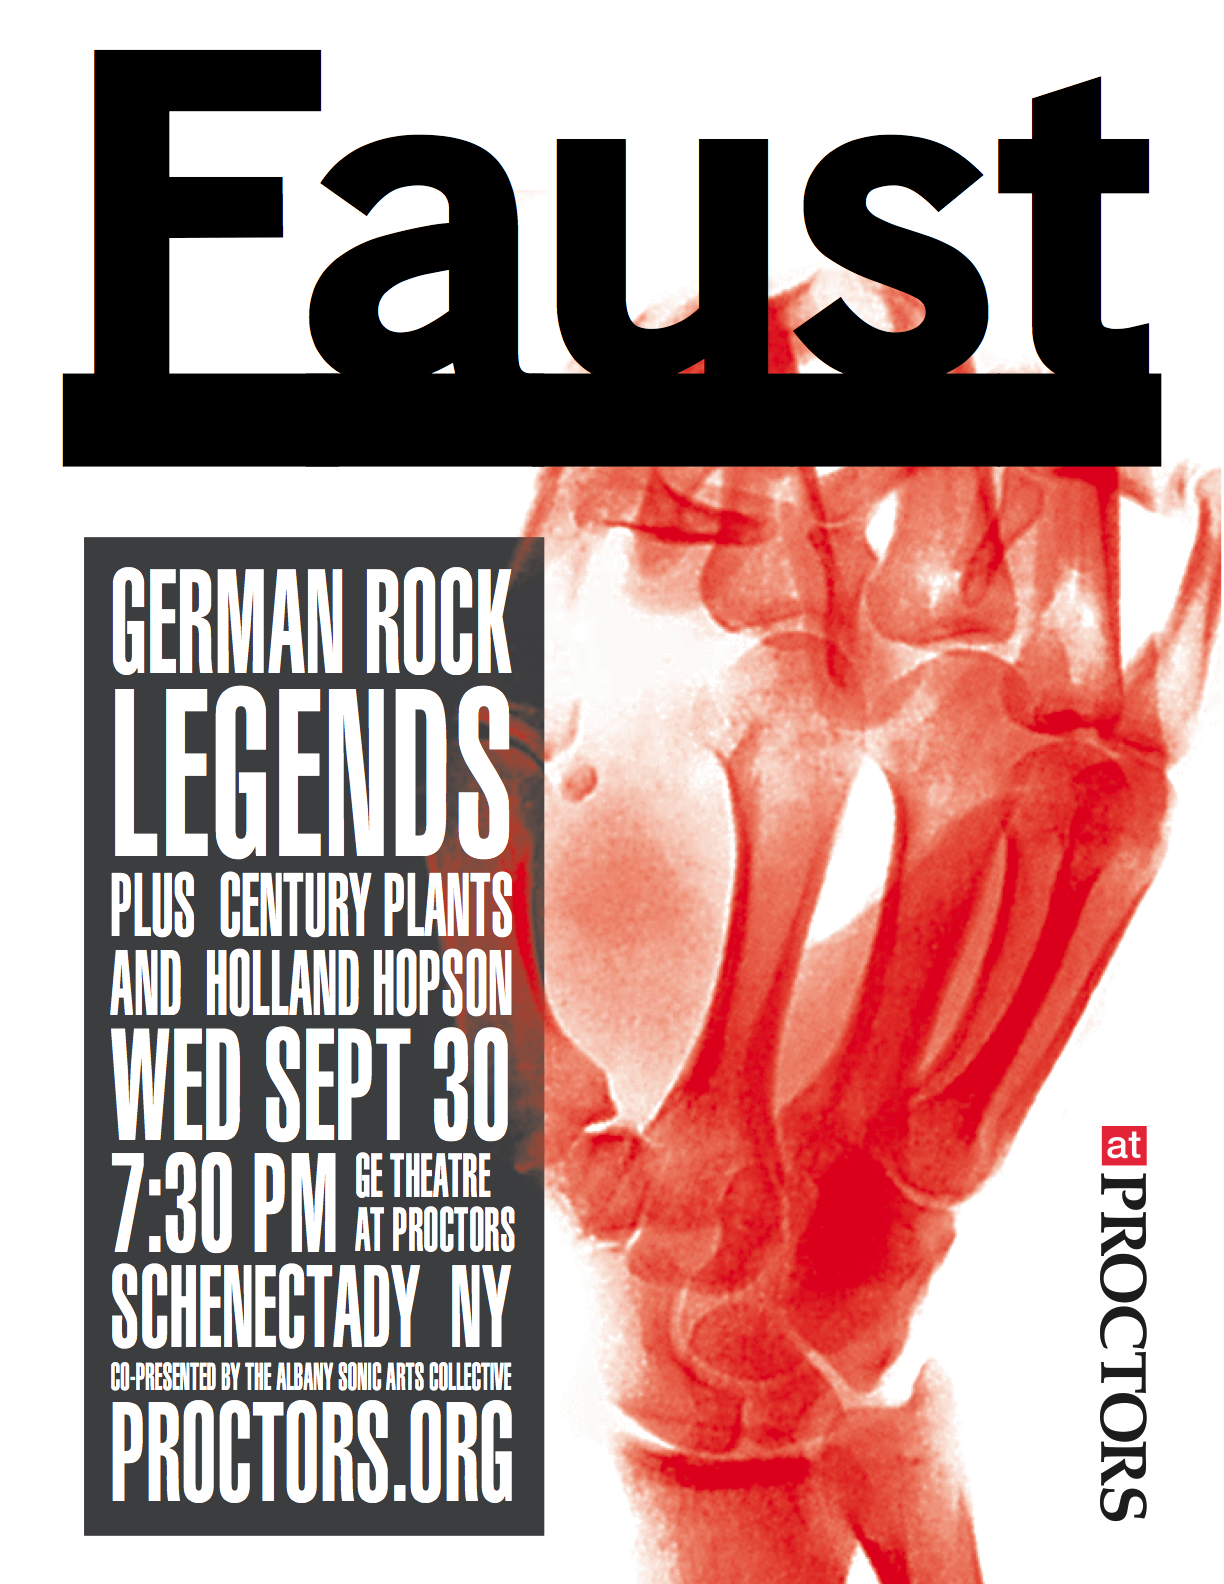 Faust, Century Plants, Holland Hopson at Proctor's Schenectady NY 9/20